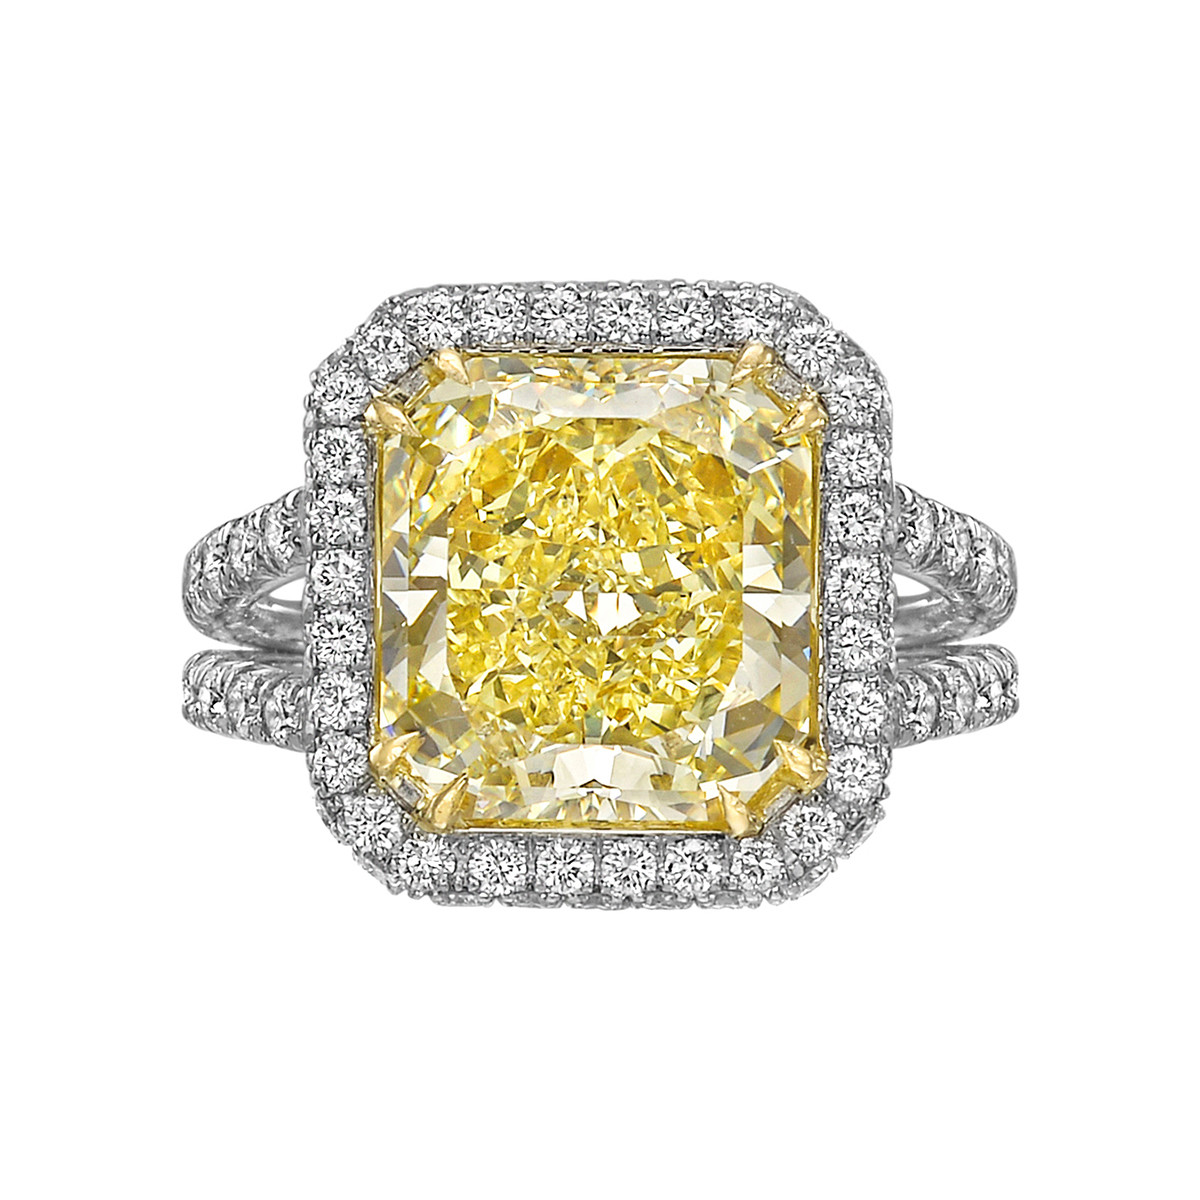 5.62ct Fancy Intense Yellow Diamond Halo Ring